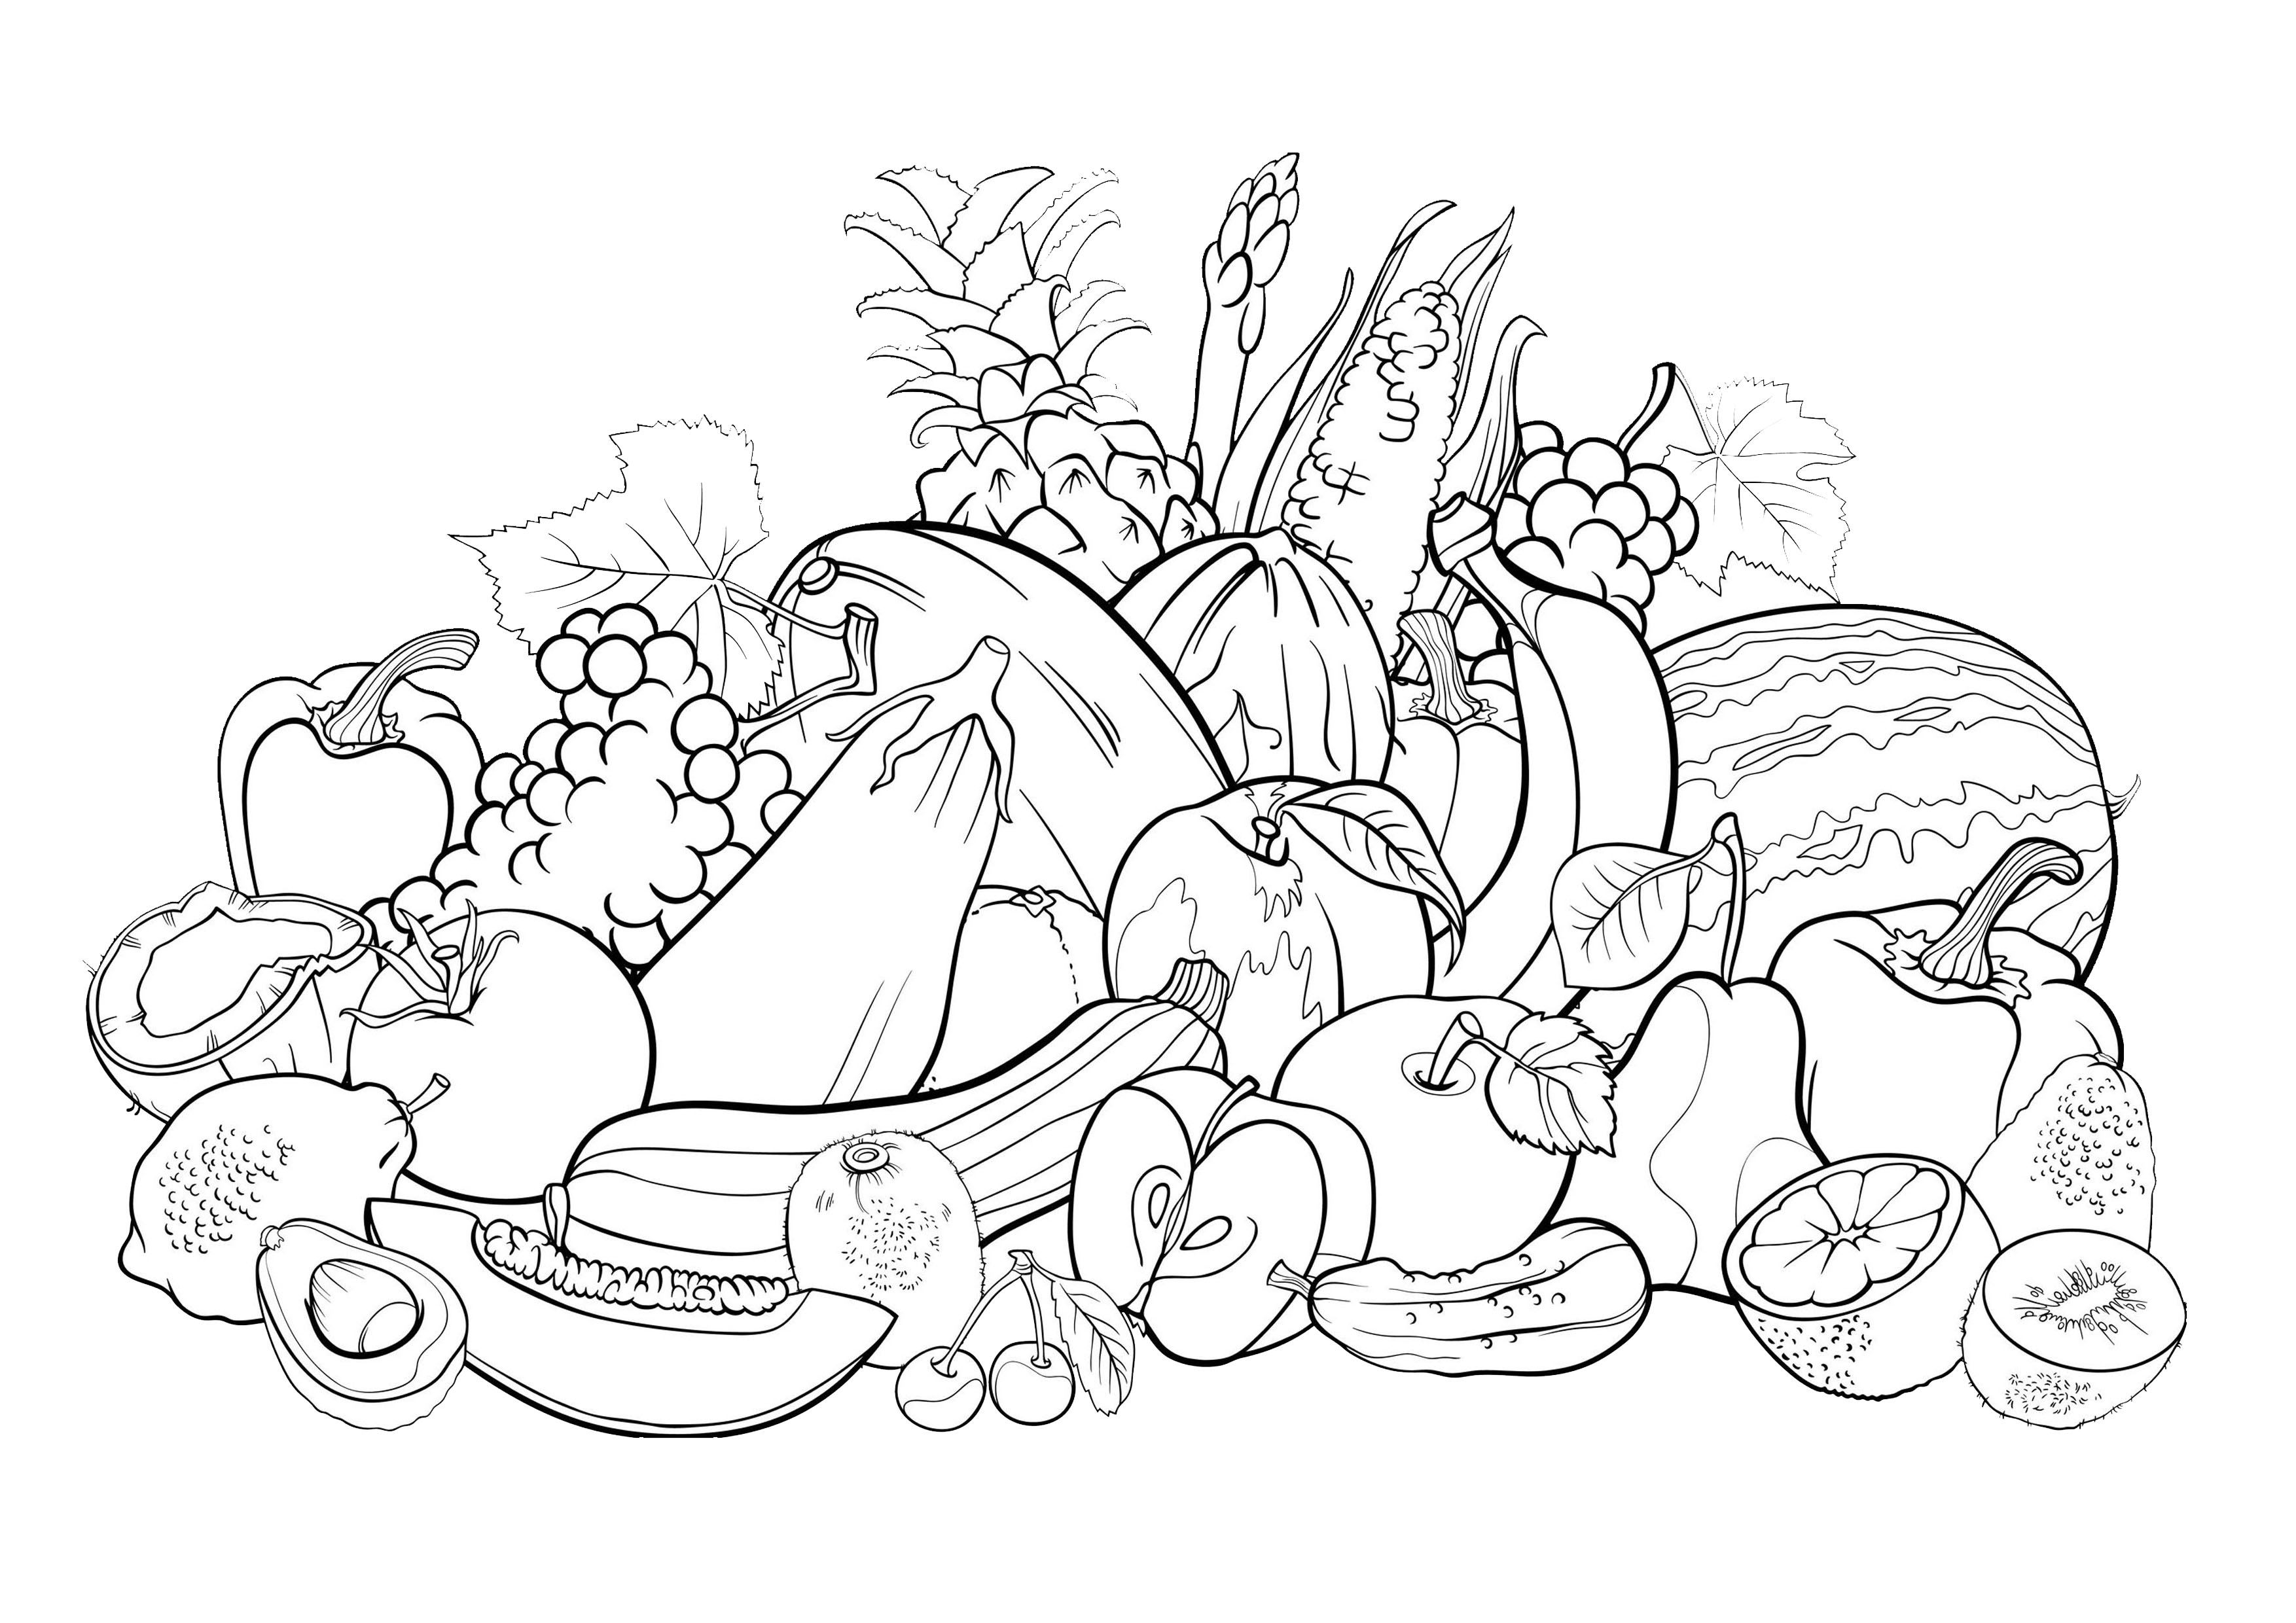 Coloring page of a fruit basket 2 - Download